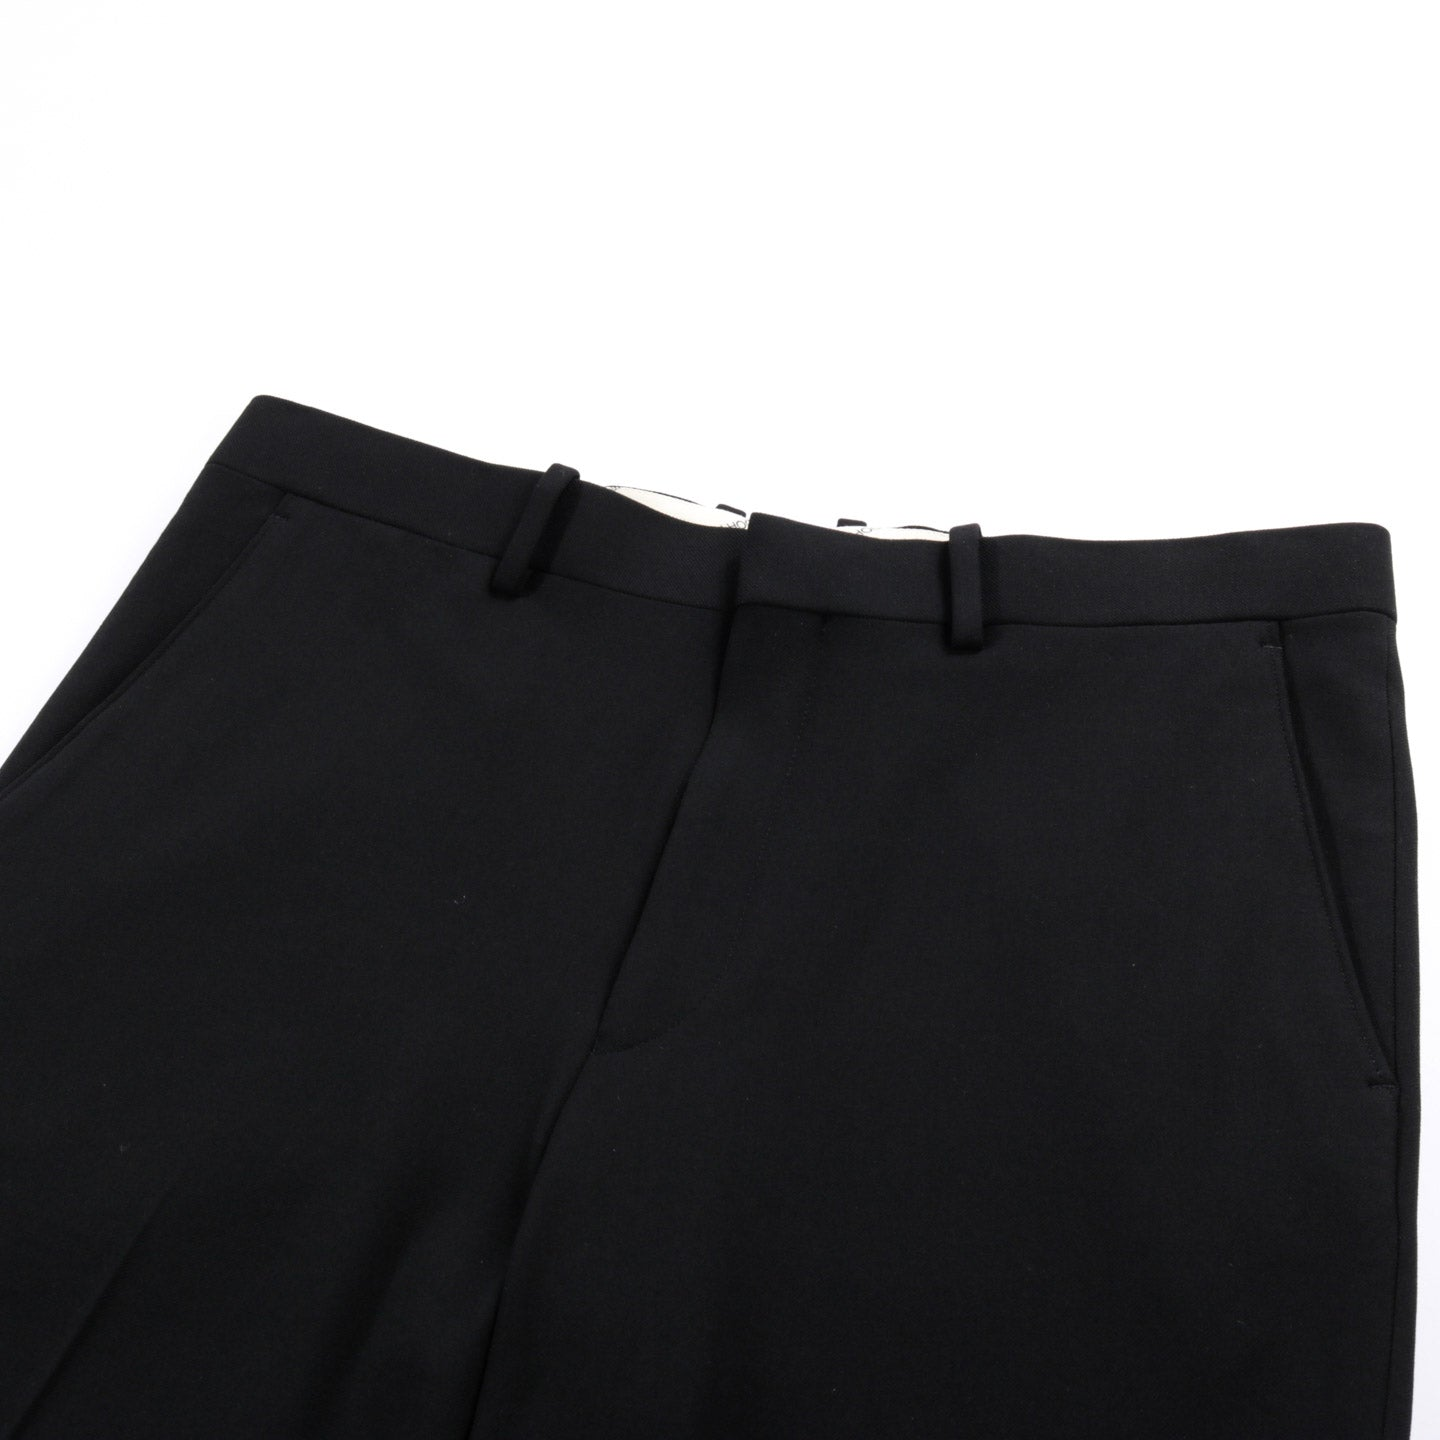 N.HOOLYWOOD 1202-PT02 TAPERED TROUSERS BLACK